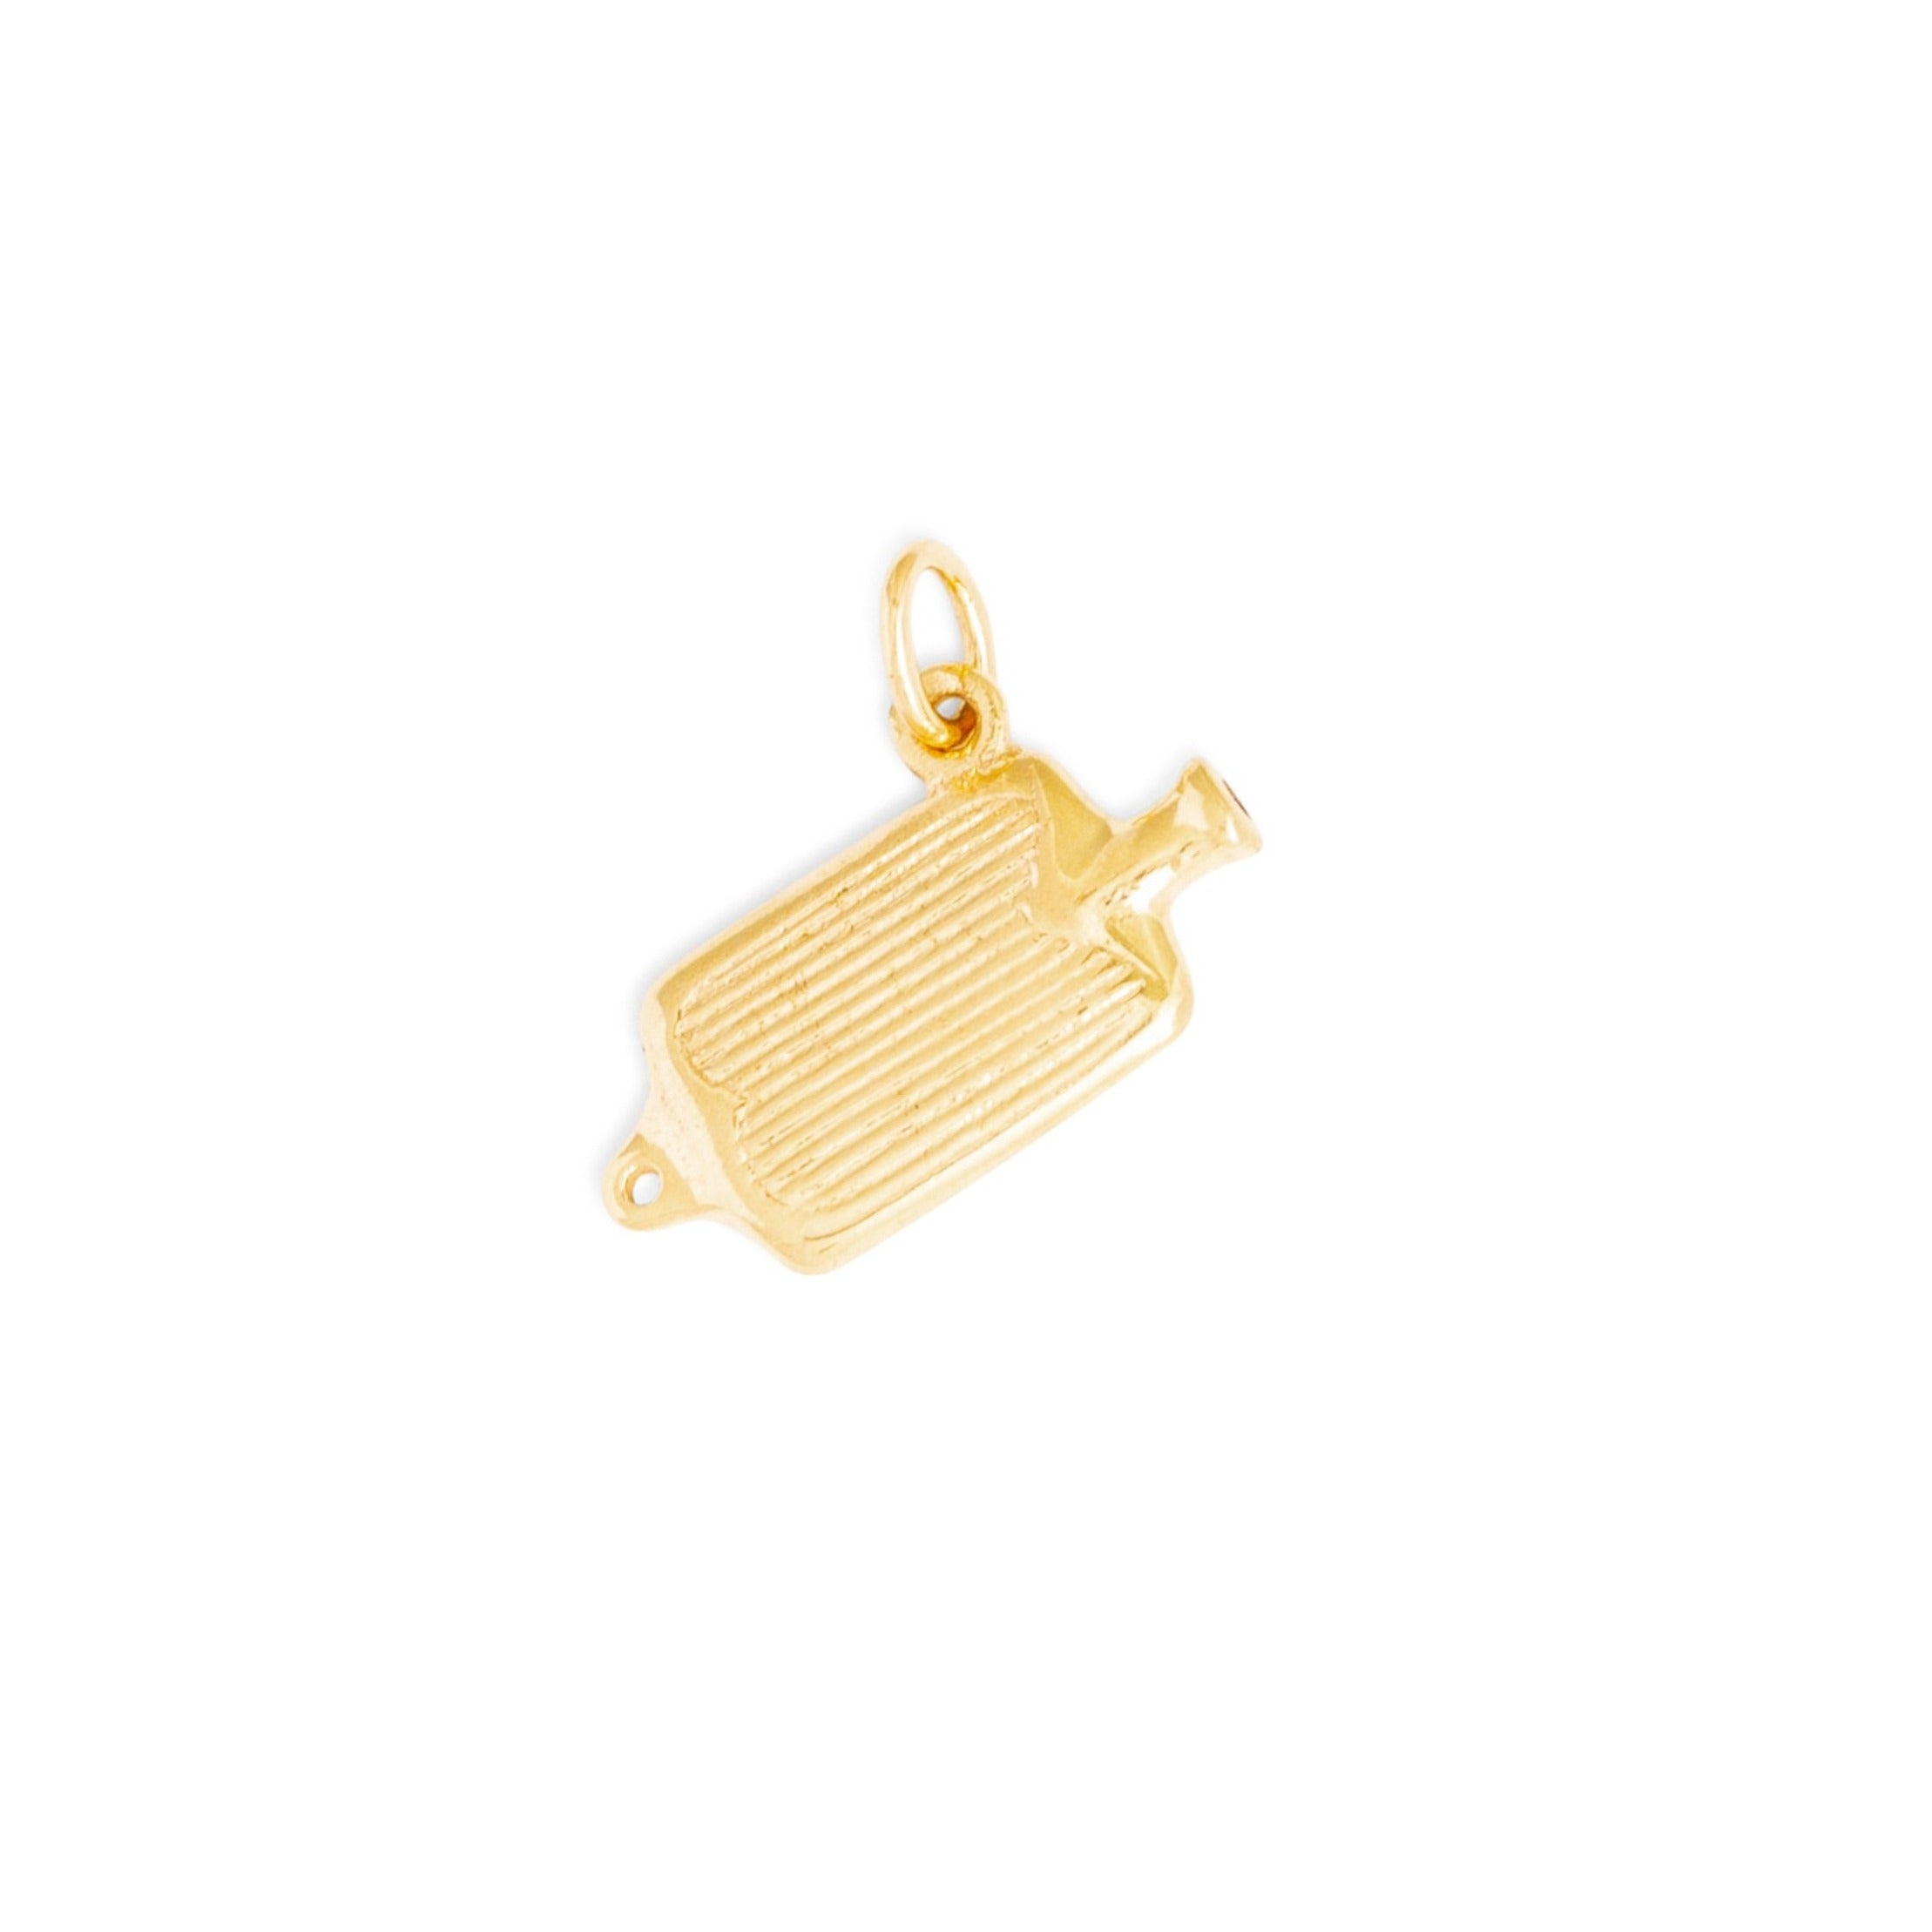 Hot Water Bottle 14k Gold Charm